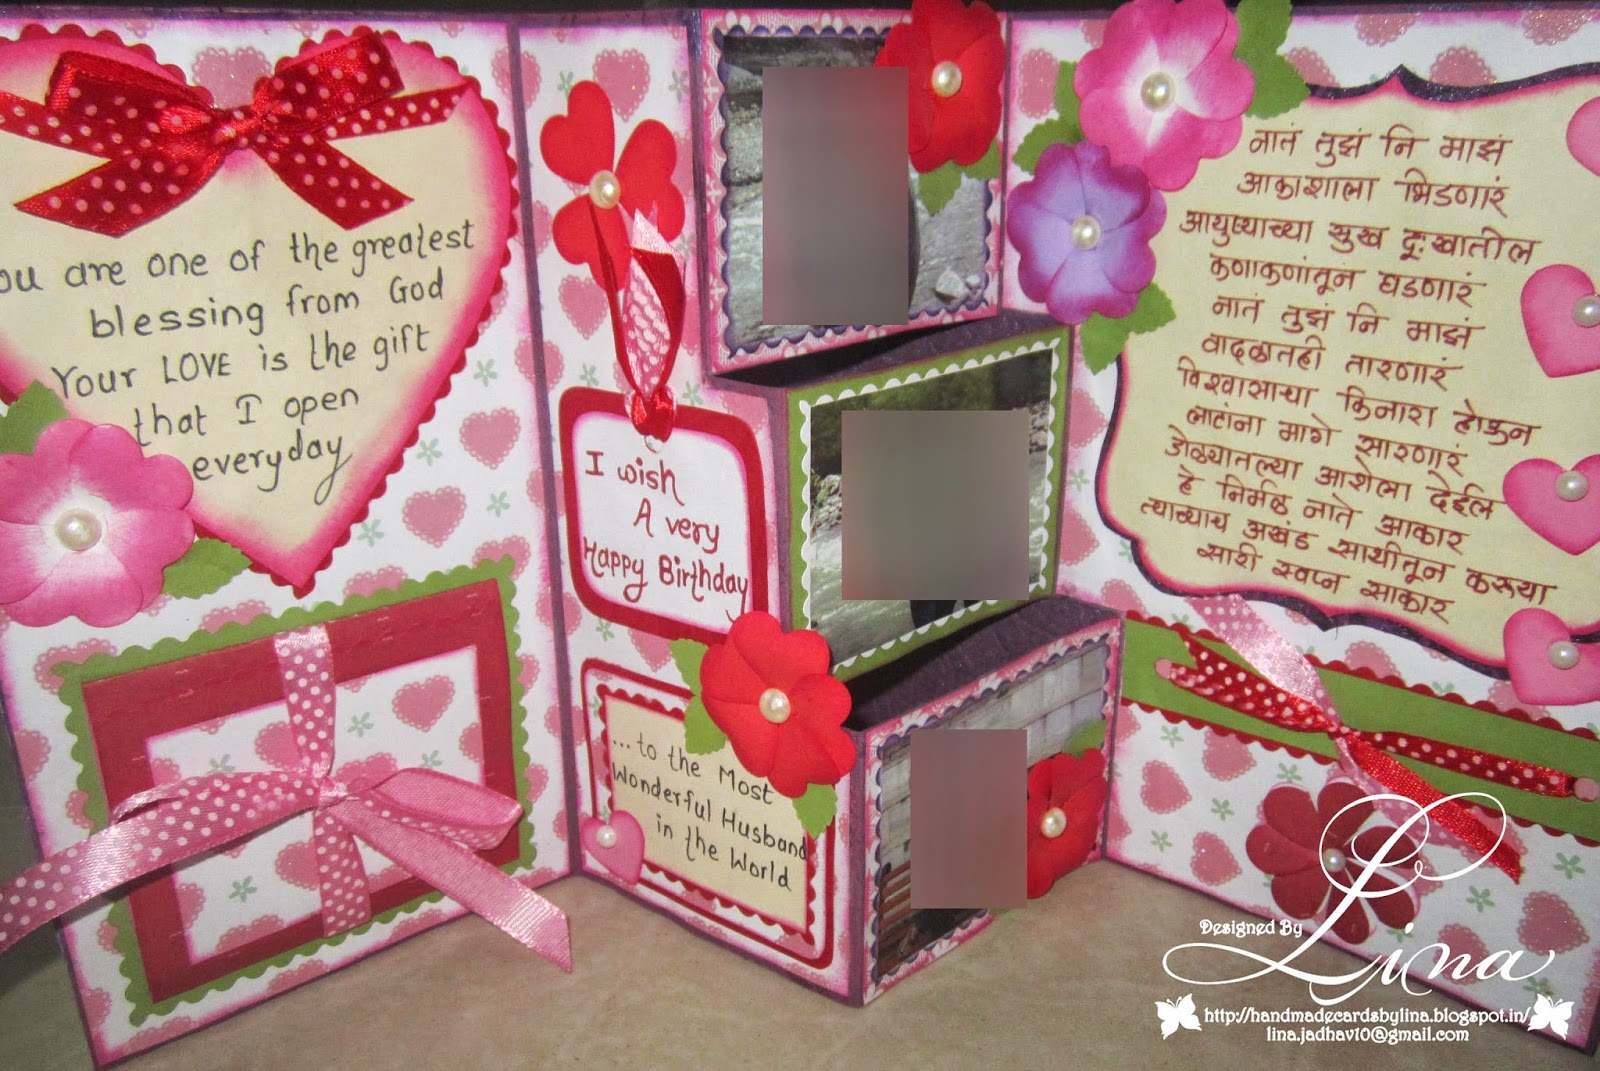 Linas handmade cards 3 step birthday card for husband this is how it looks when you opens it thecheapjerseys Images